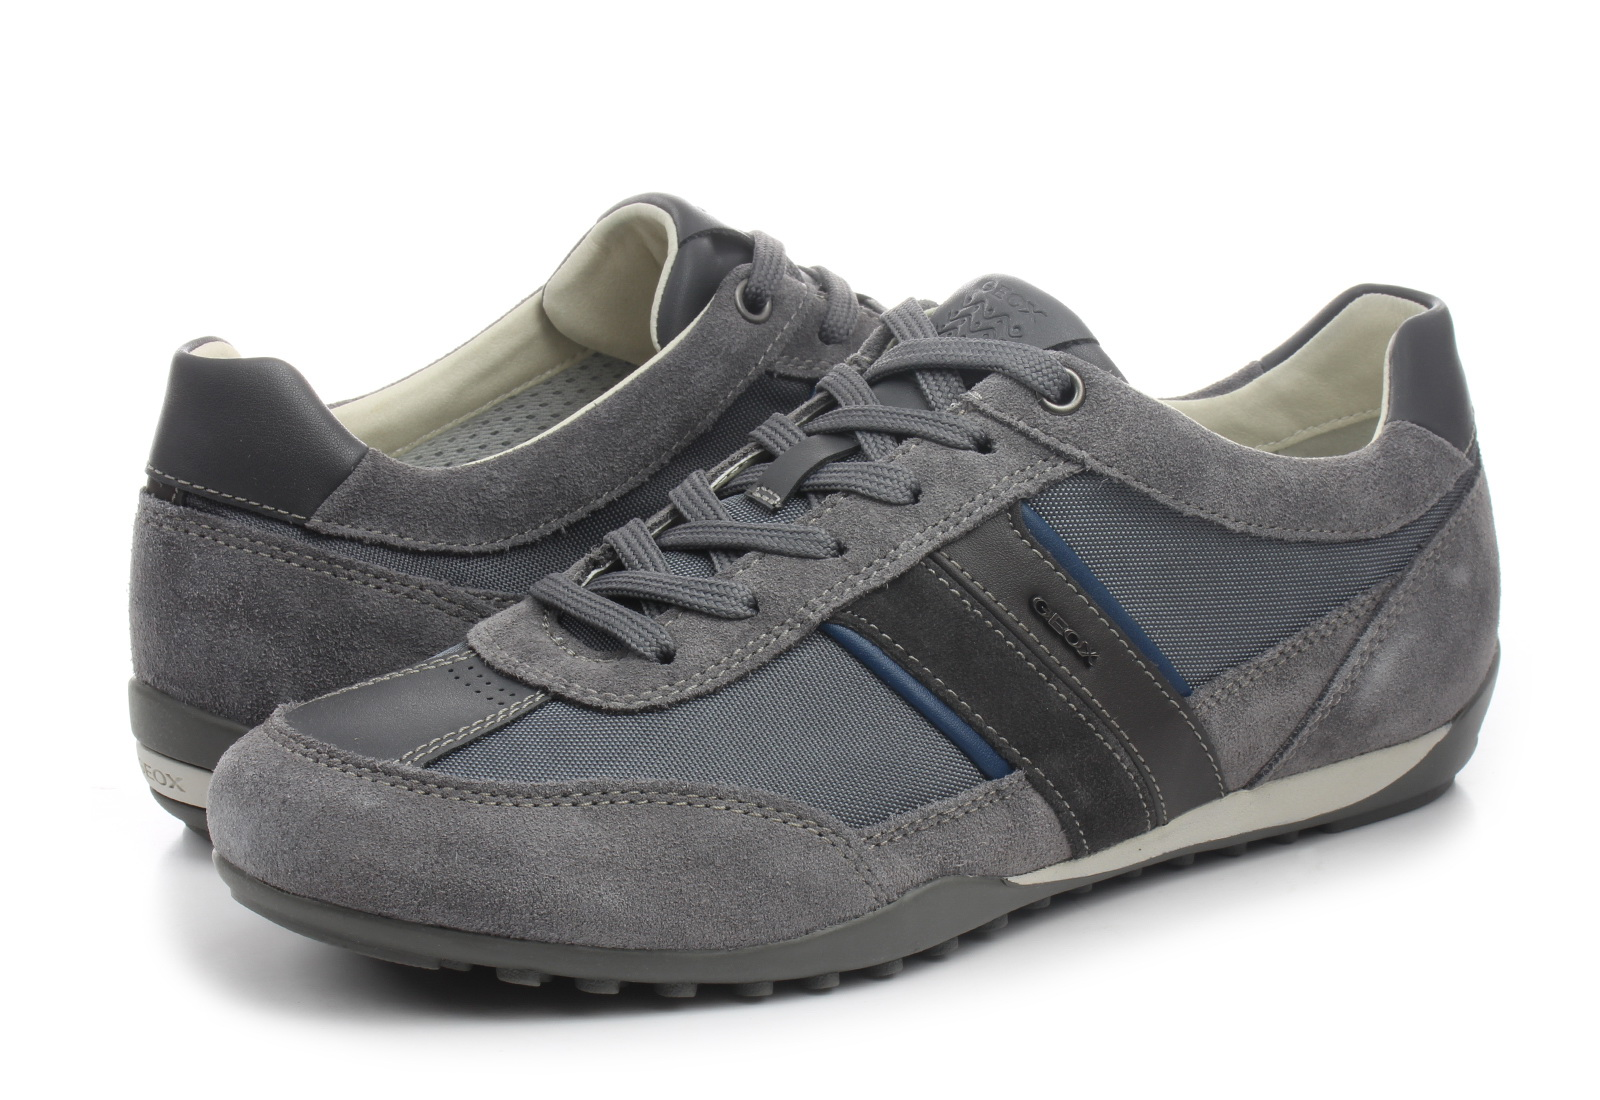 gran descuento 7a98c 80e61 Geox Shoes - Wells - T5C-2211-C9002 - Online shop for sneakers, shoes and  boots